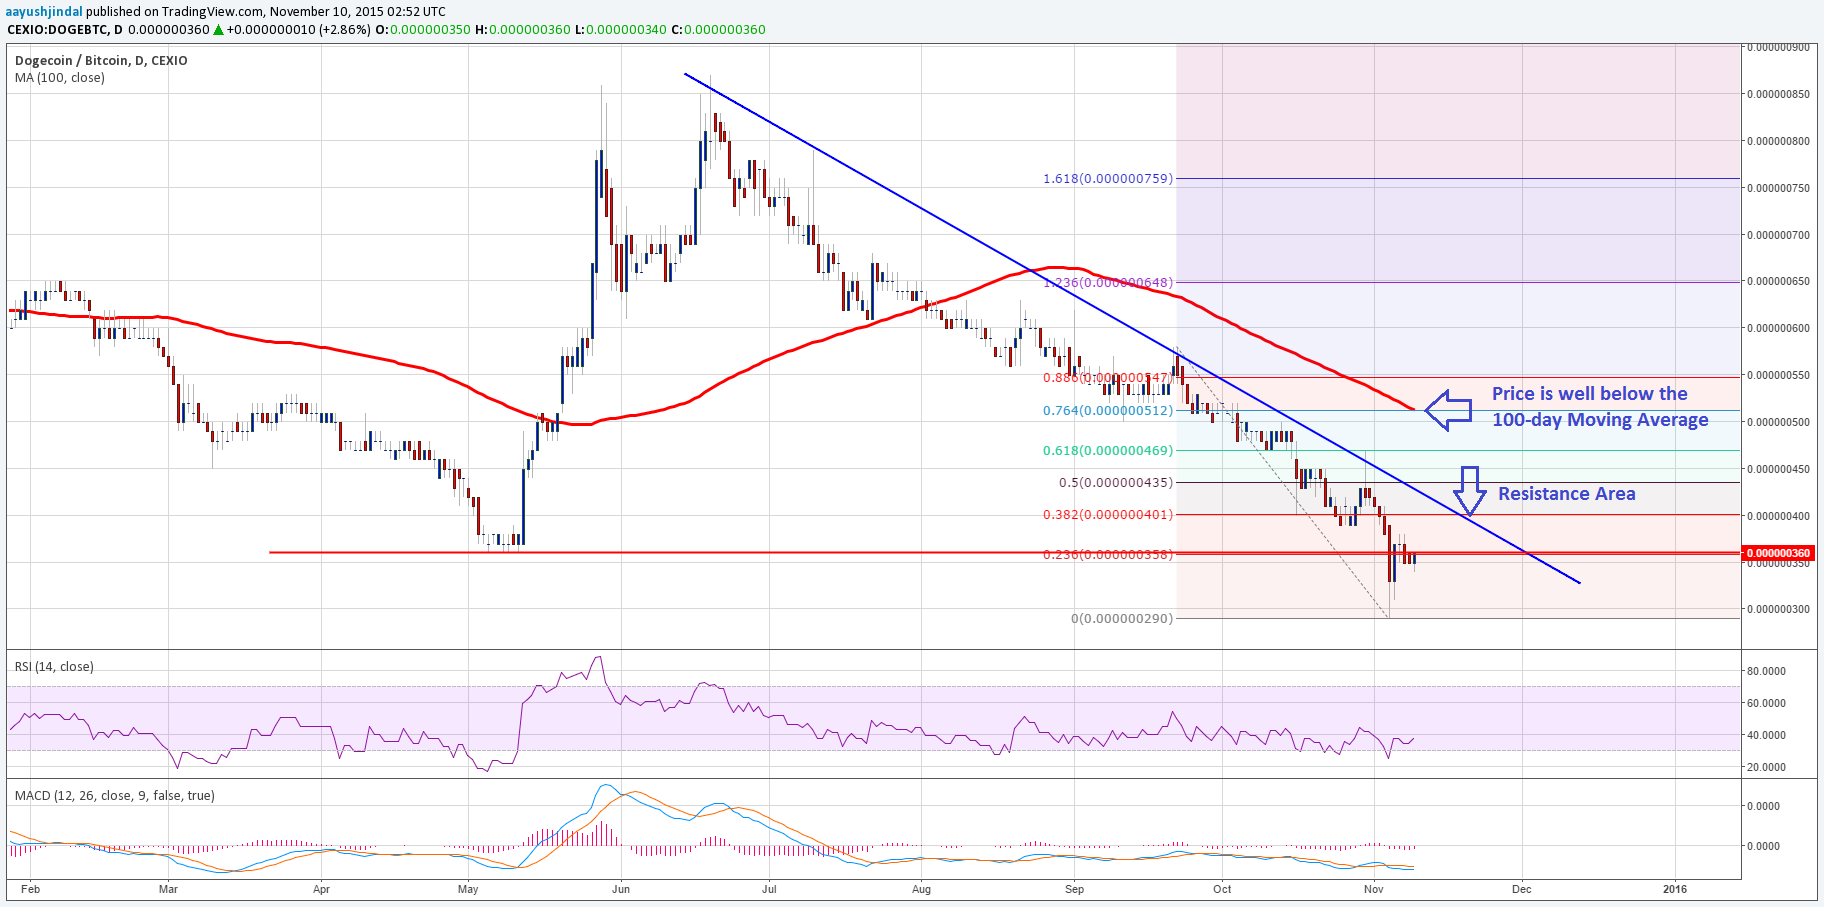 Dogecoin Price Technical Analysis – Looking at the Big Picture